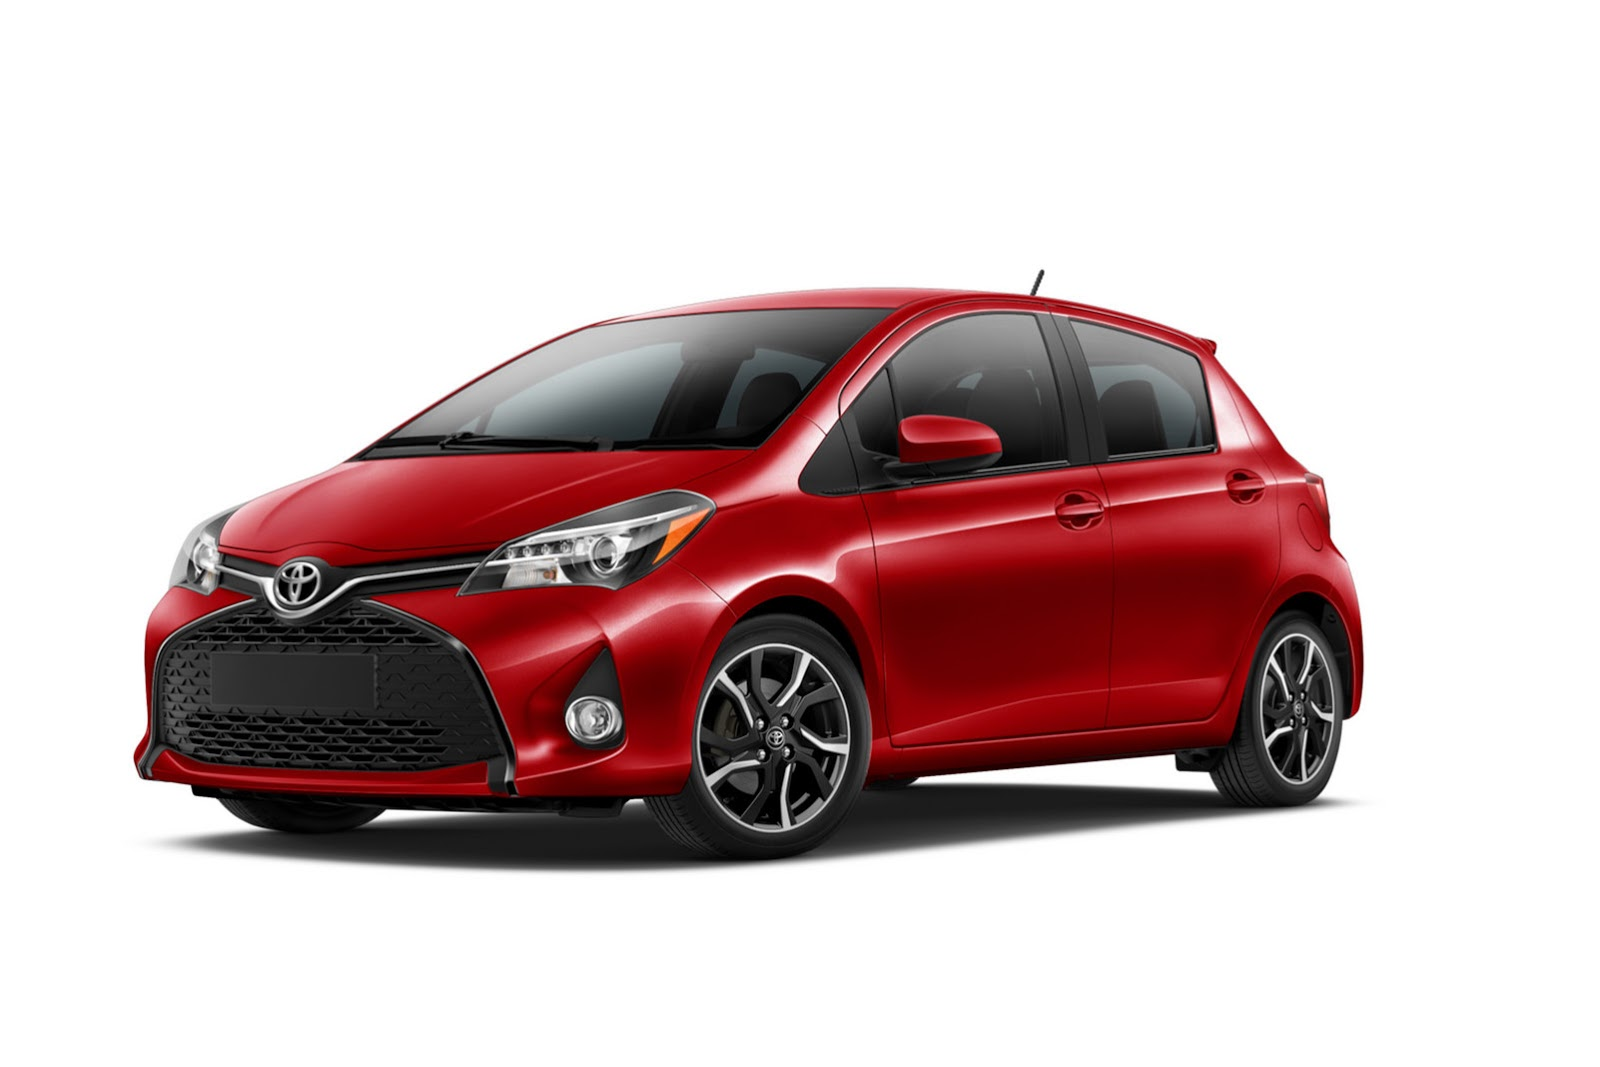 euro flavored 2015 toyota yaris facelift comes to u s priced from 14 485 carscoops. Black Bedroom Furniture Sets. Home Design Ideas